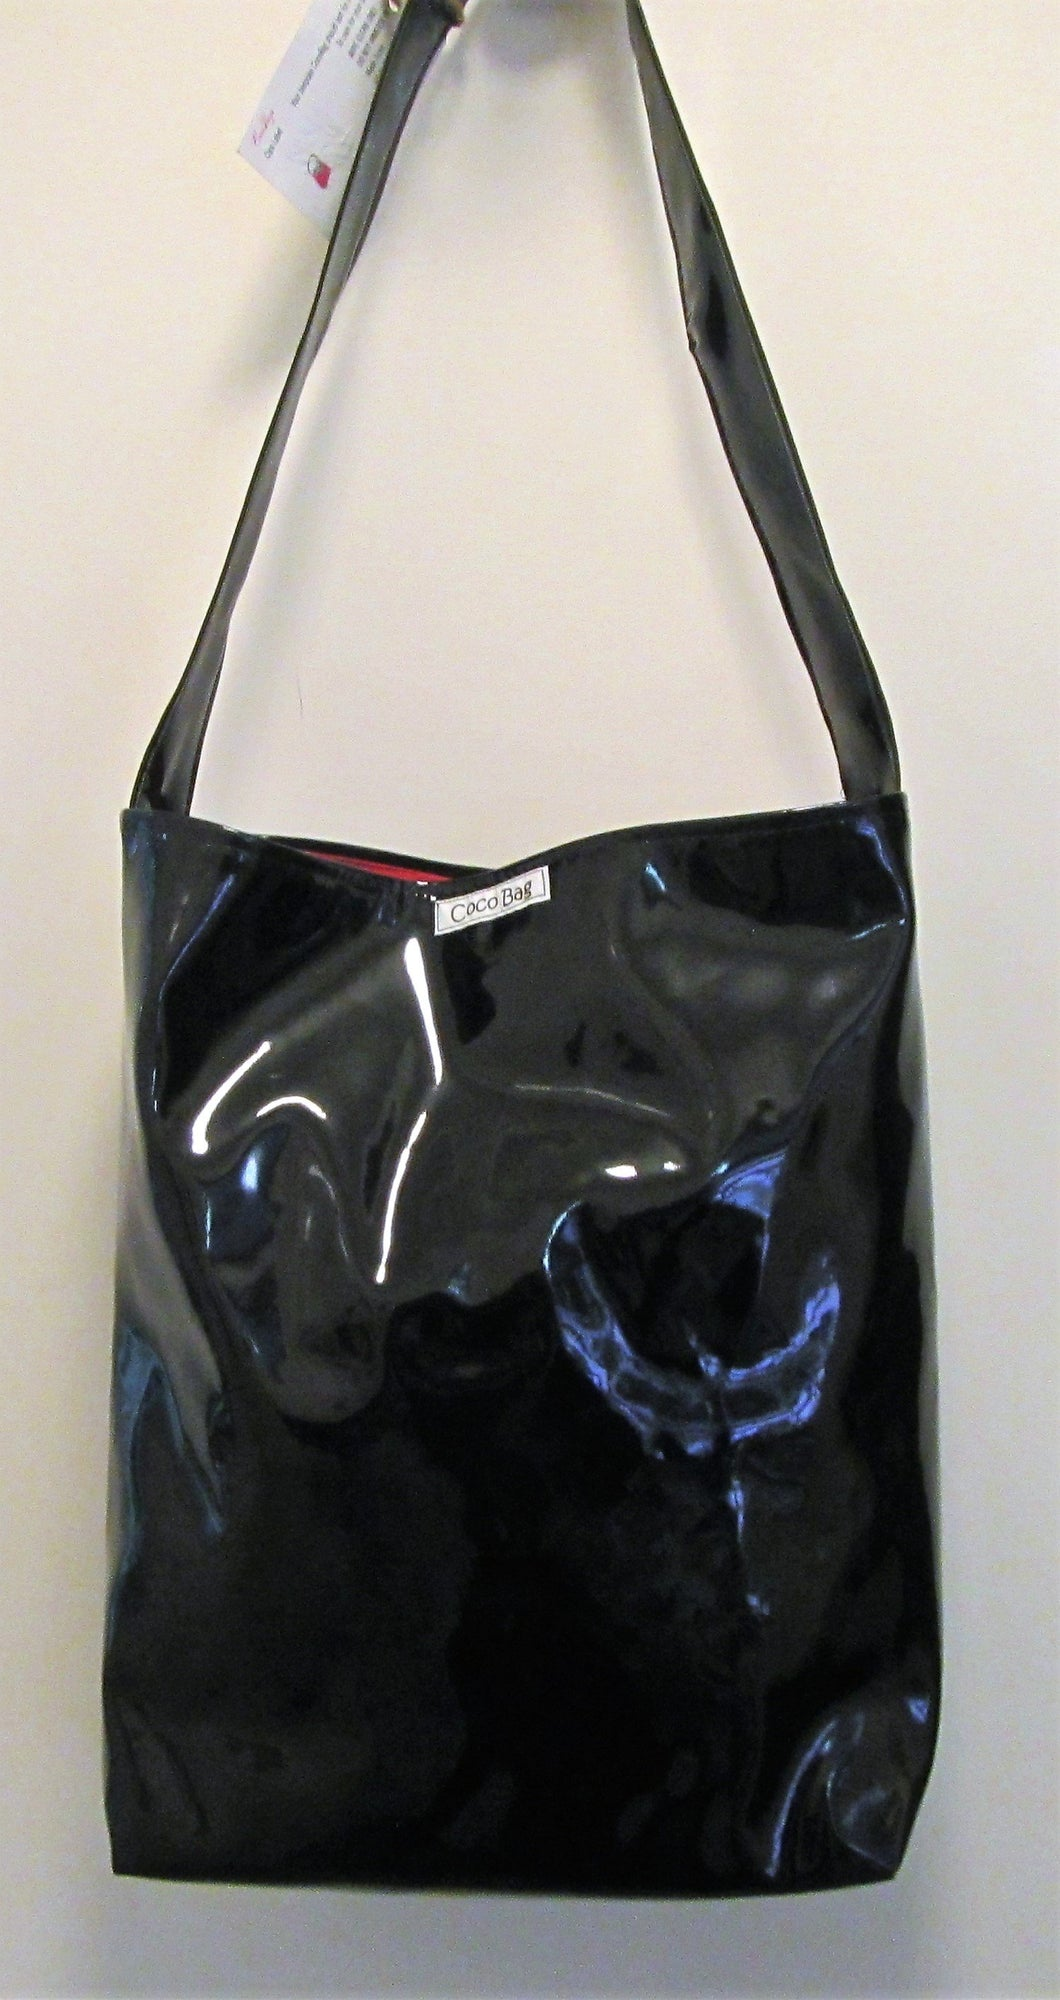 Beautiful handcrafted black patent handbag with one handle